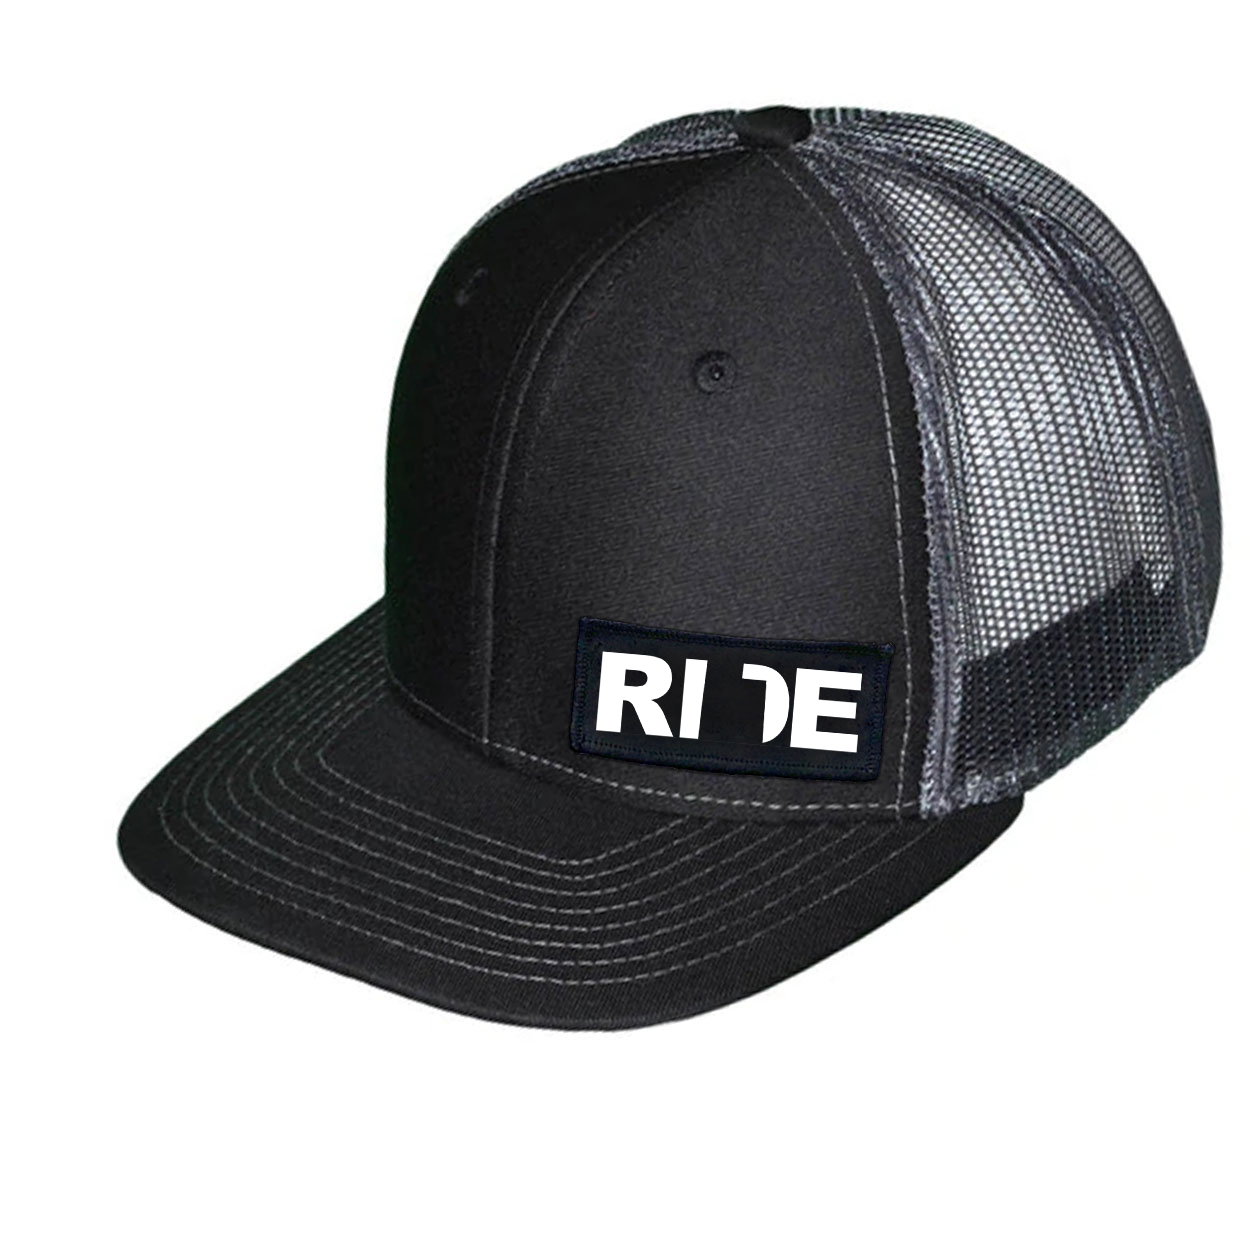 Ride Utah Night Out Woven Patch Snapback Trucker Hat Black/Dark Gray (White Logo)